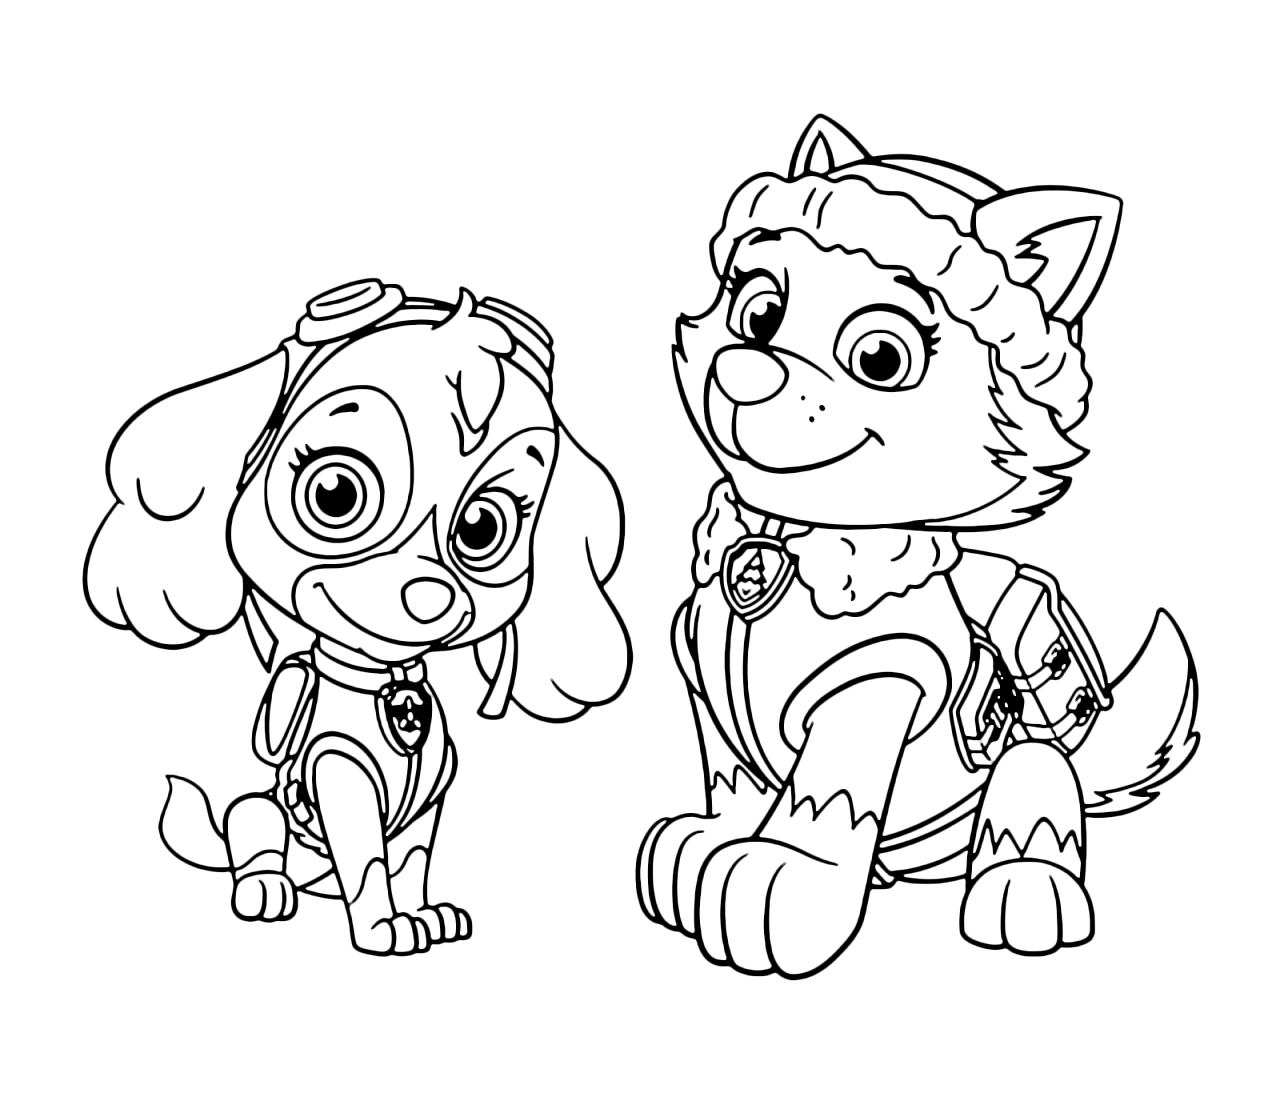 paw patrol free coloring pages printable paw patrol coloring pages birthday printable pages paw free patrol printable coloring